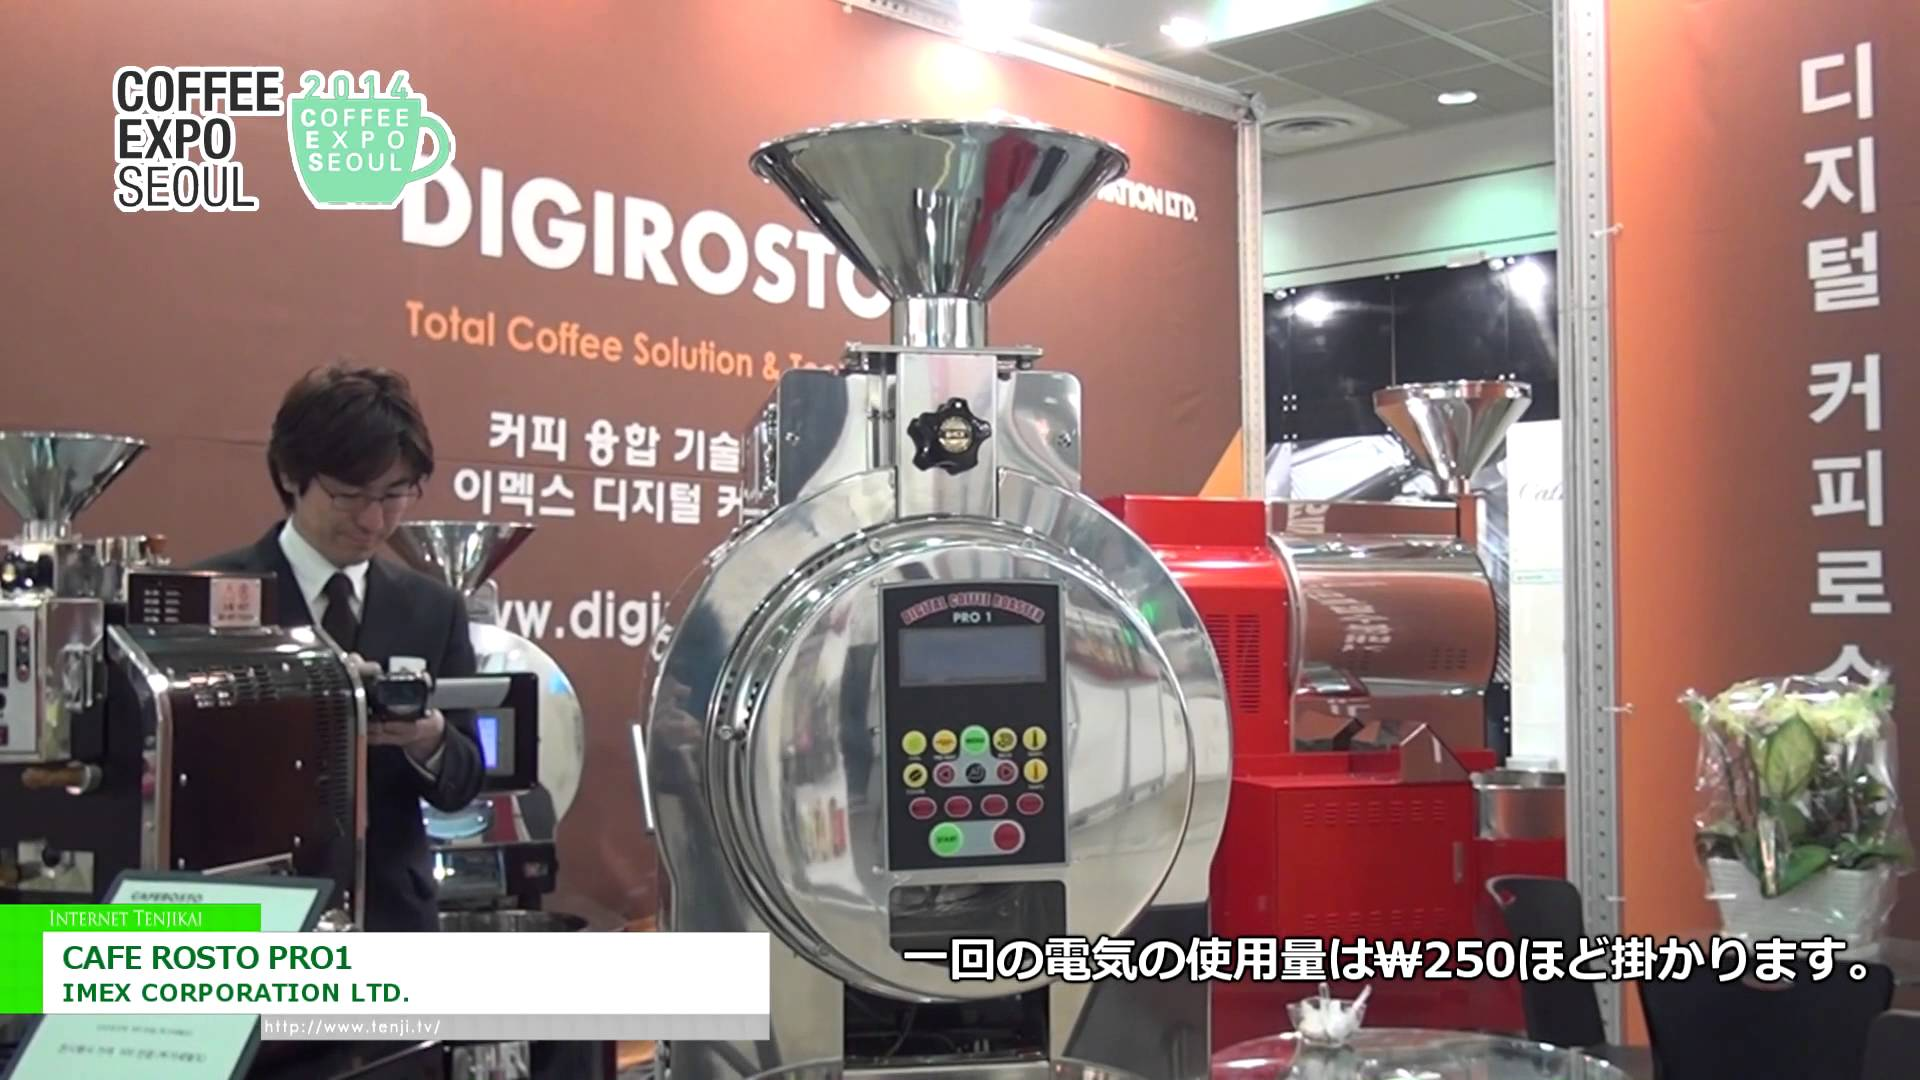 [Coffee Expo Seoul 2014] CAFE ROSTO PRO1 – IMEX CORPORATION LTD.